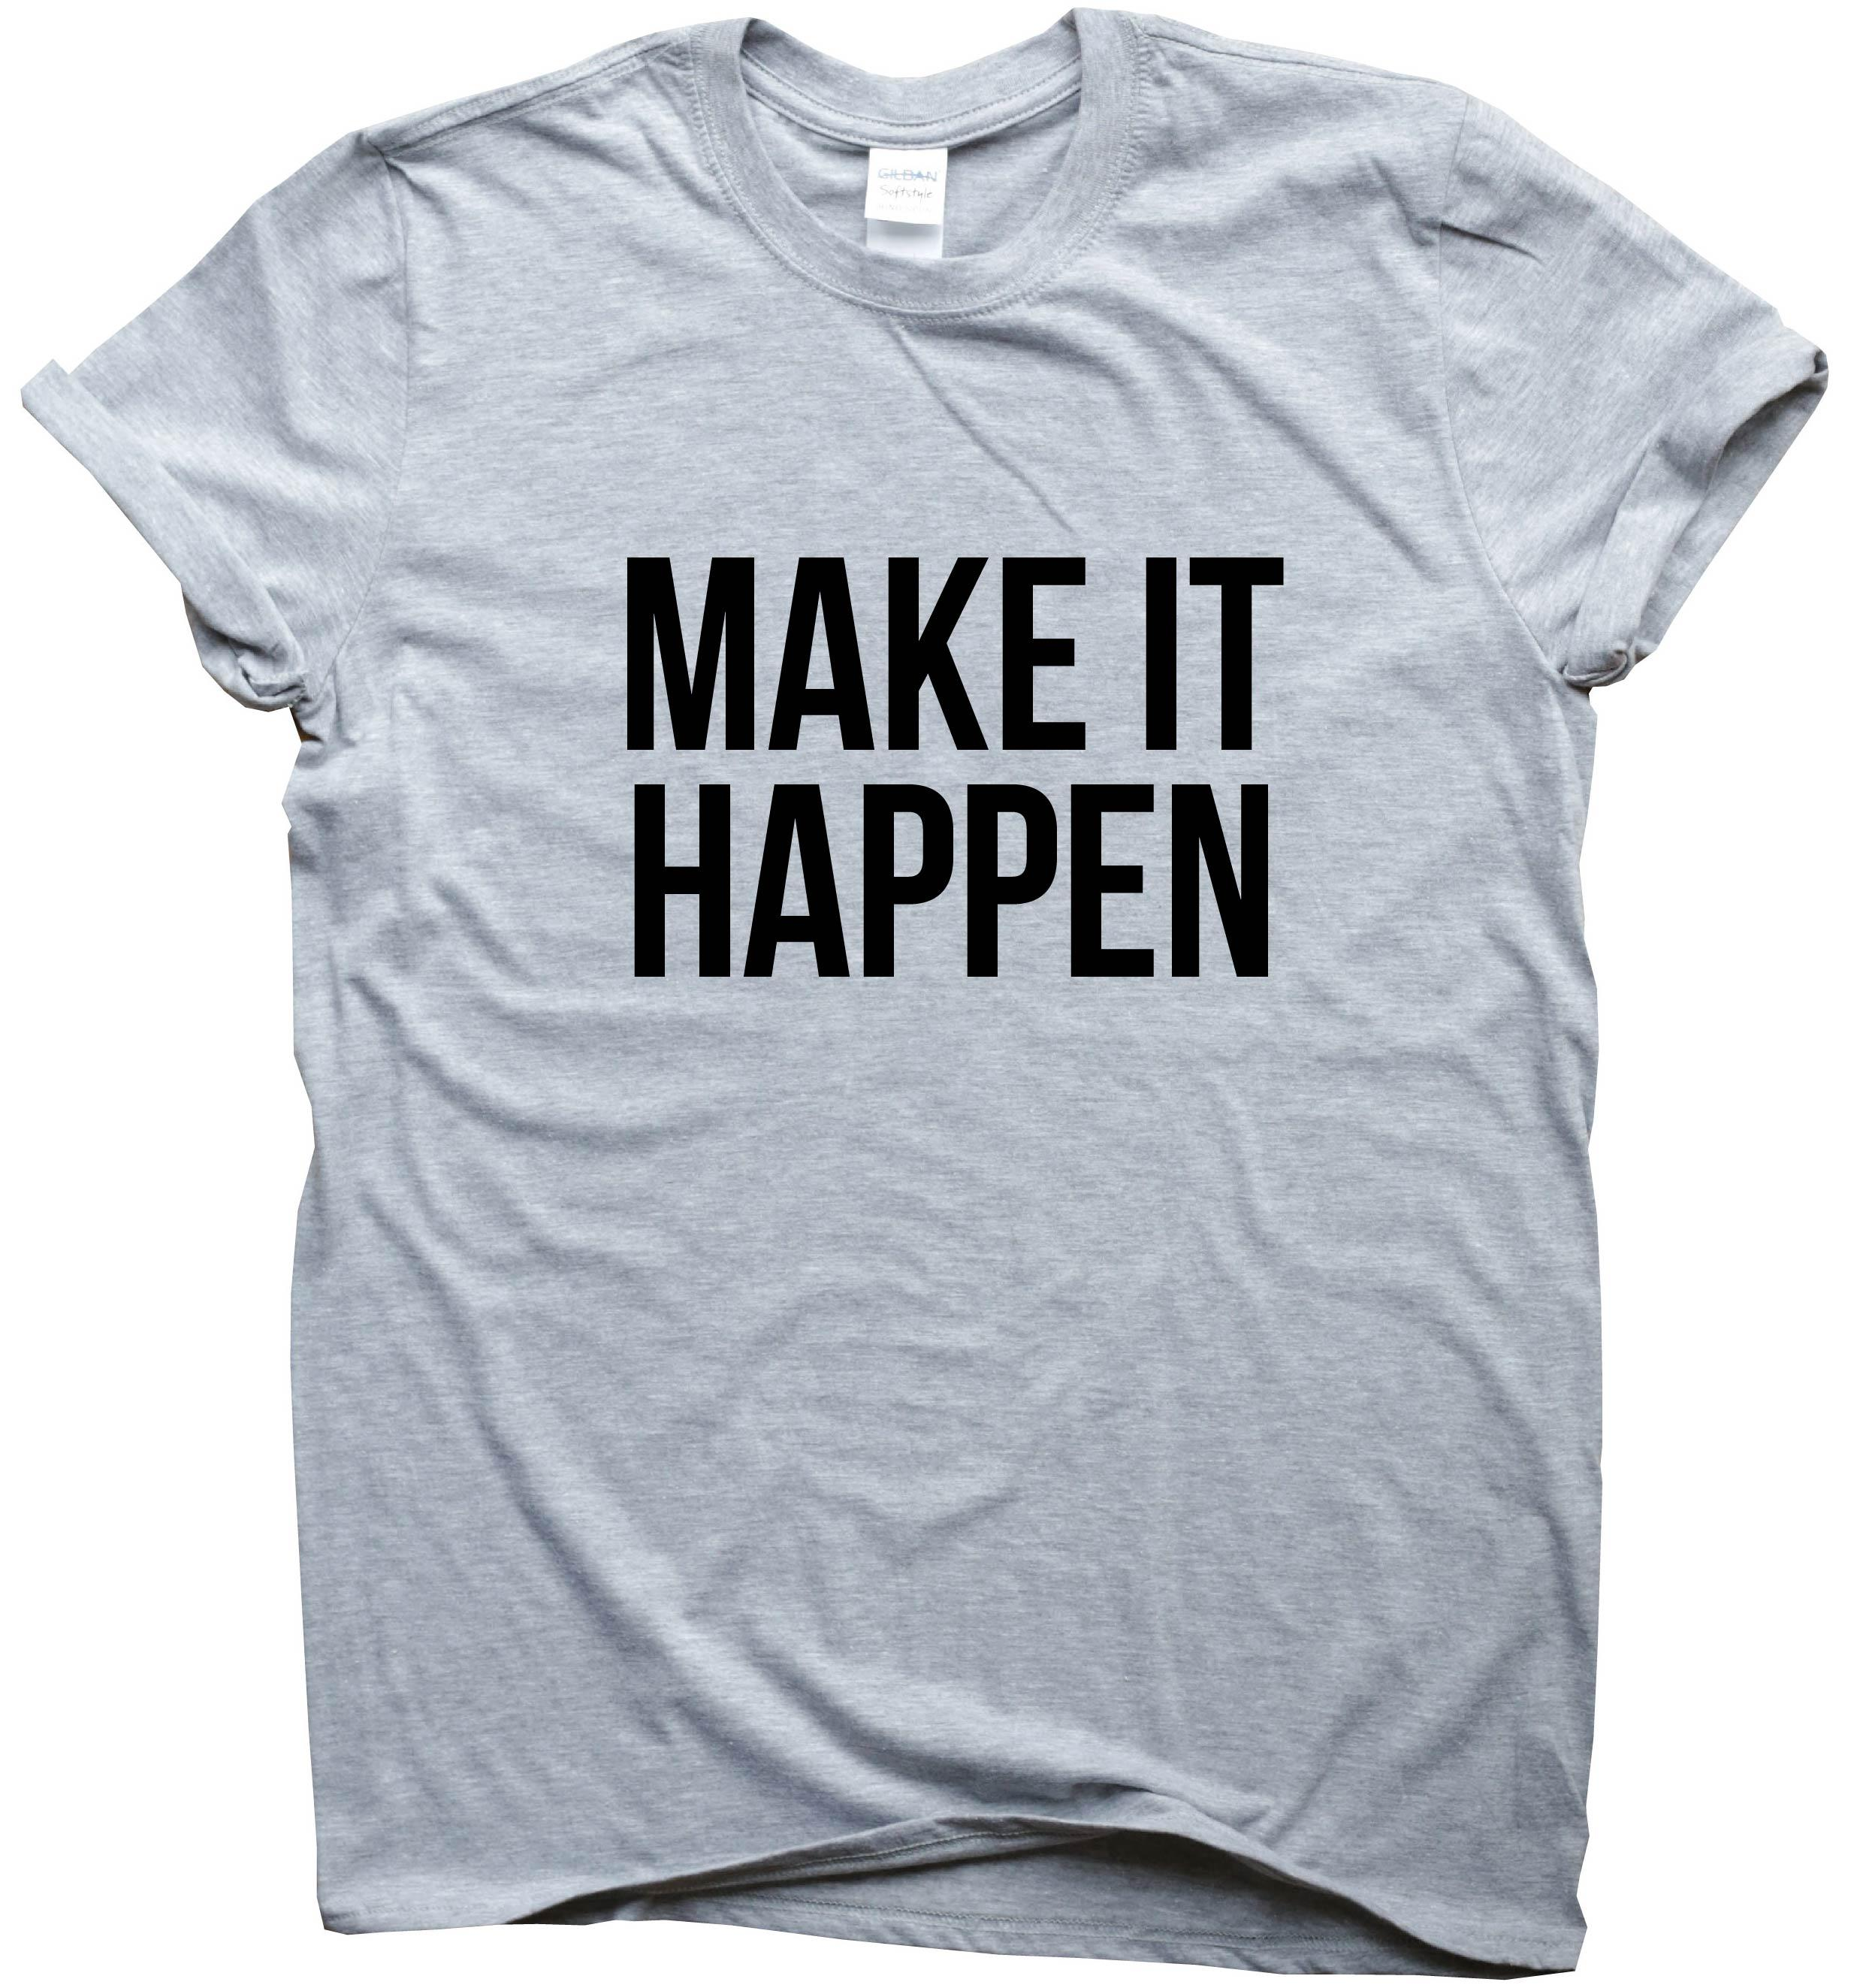 Make It Happen Awesome T Shirt Inspirational Quote Top Motivational